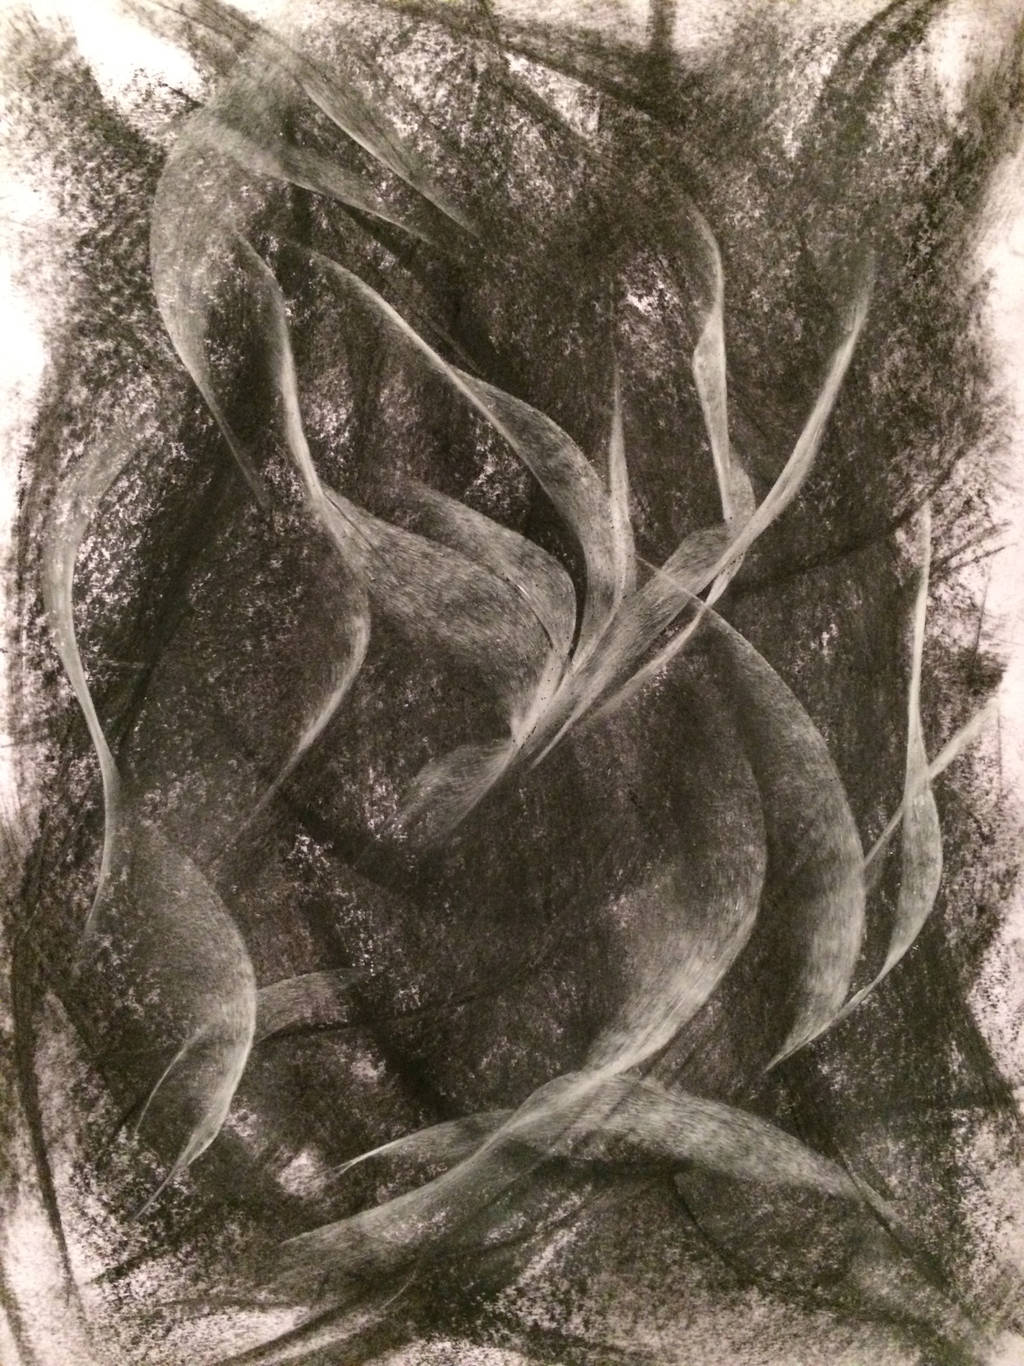 CHARCOAL AND PASTEL ABSTRACT by WeirdDarkness